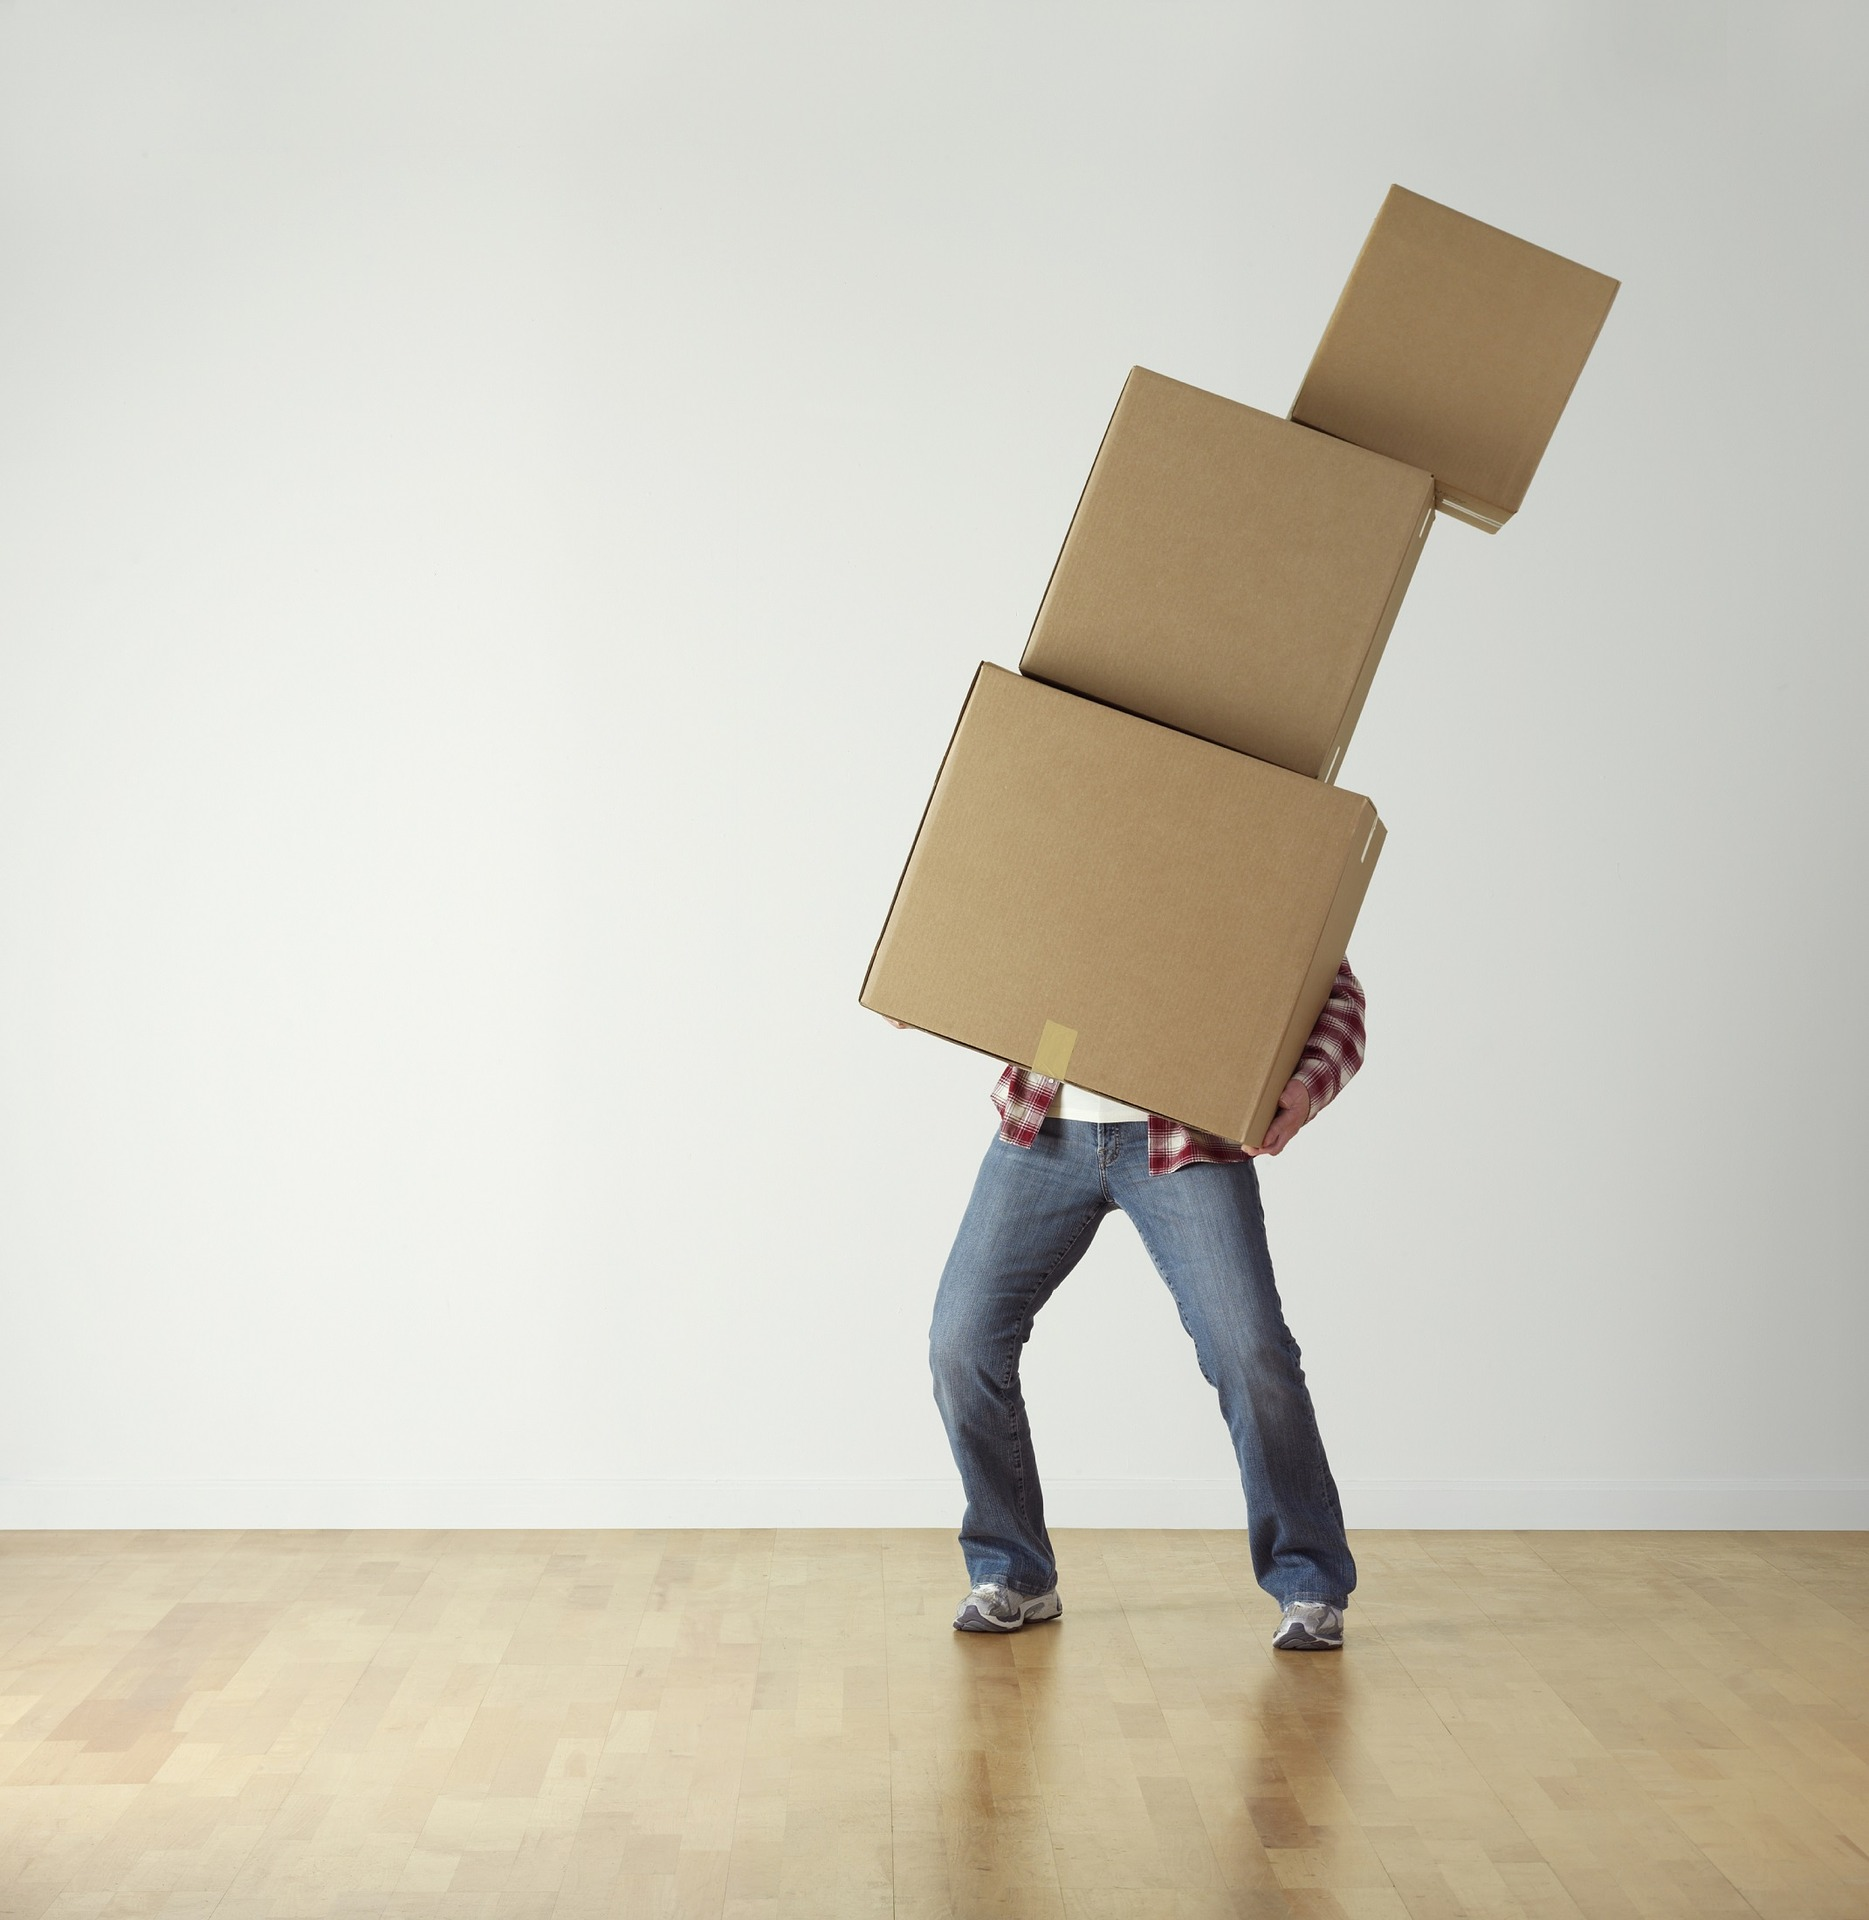 5 Tips for Making Moving Easier